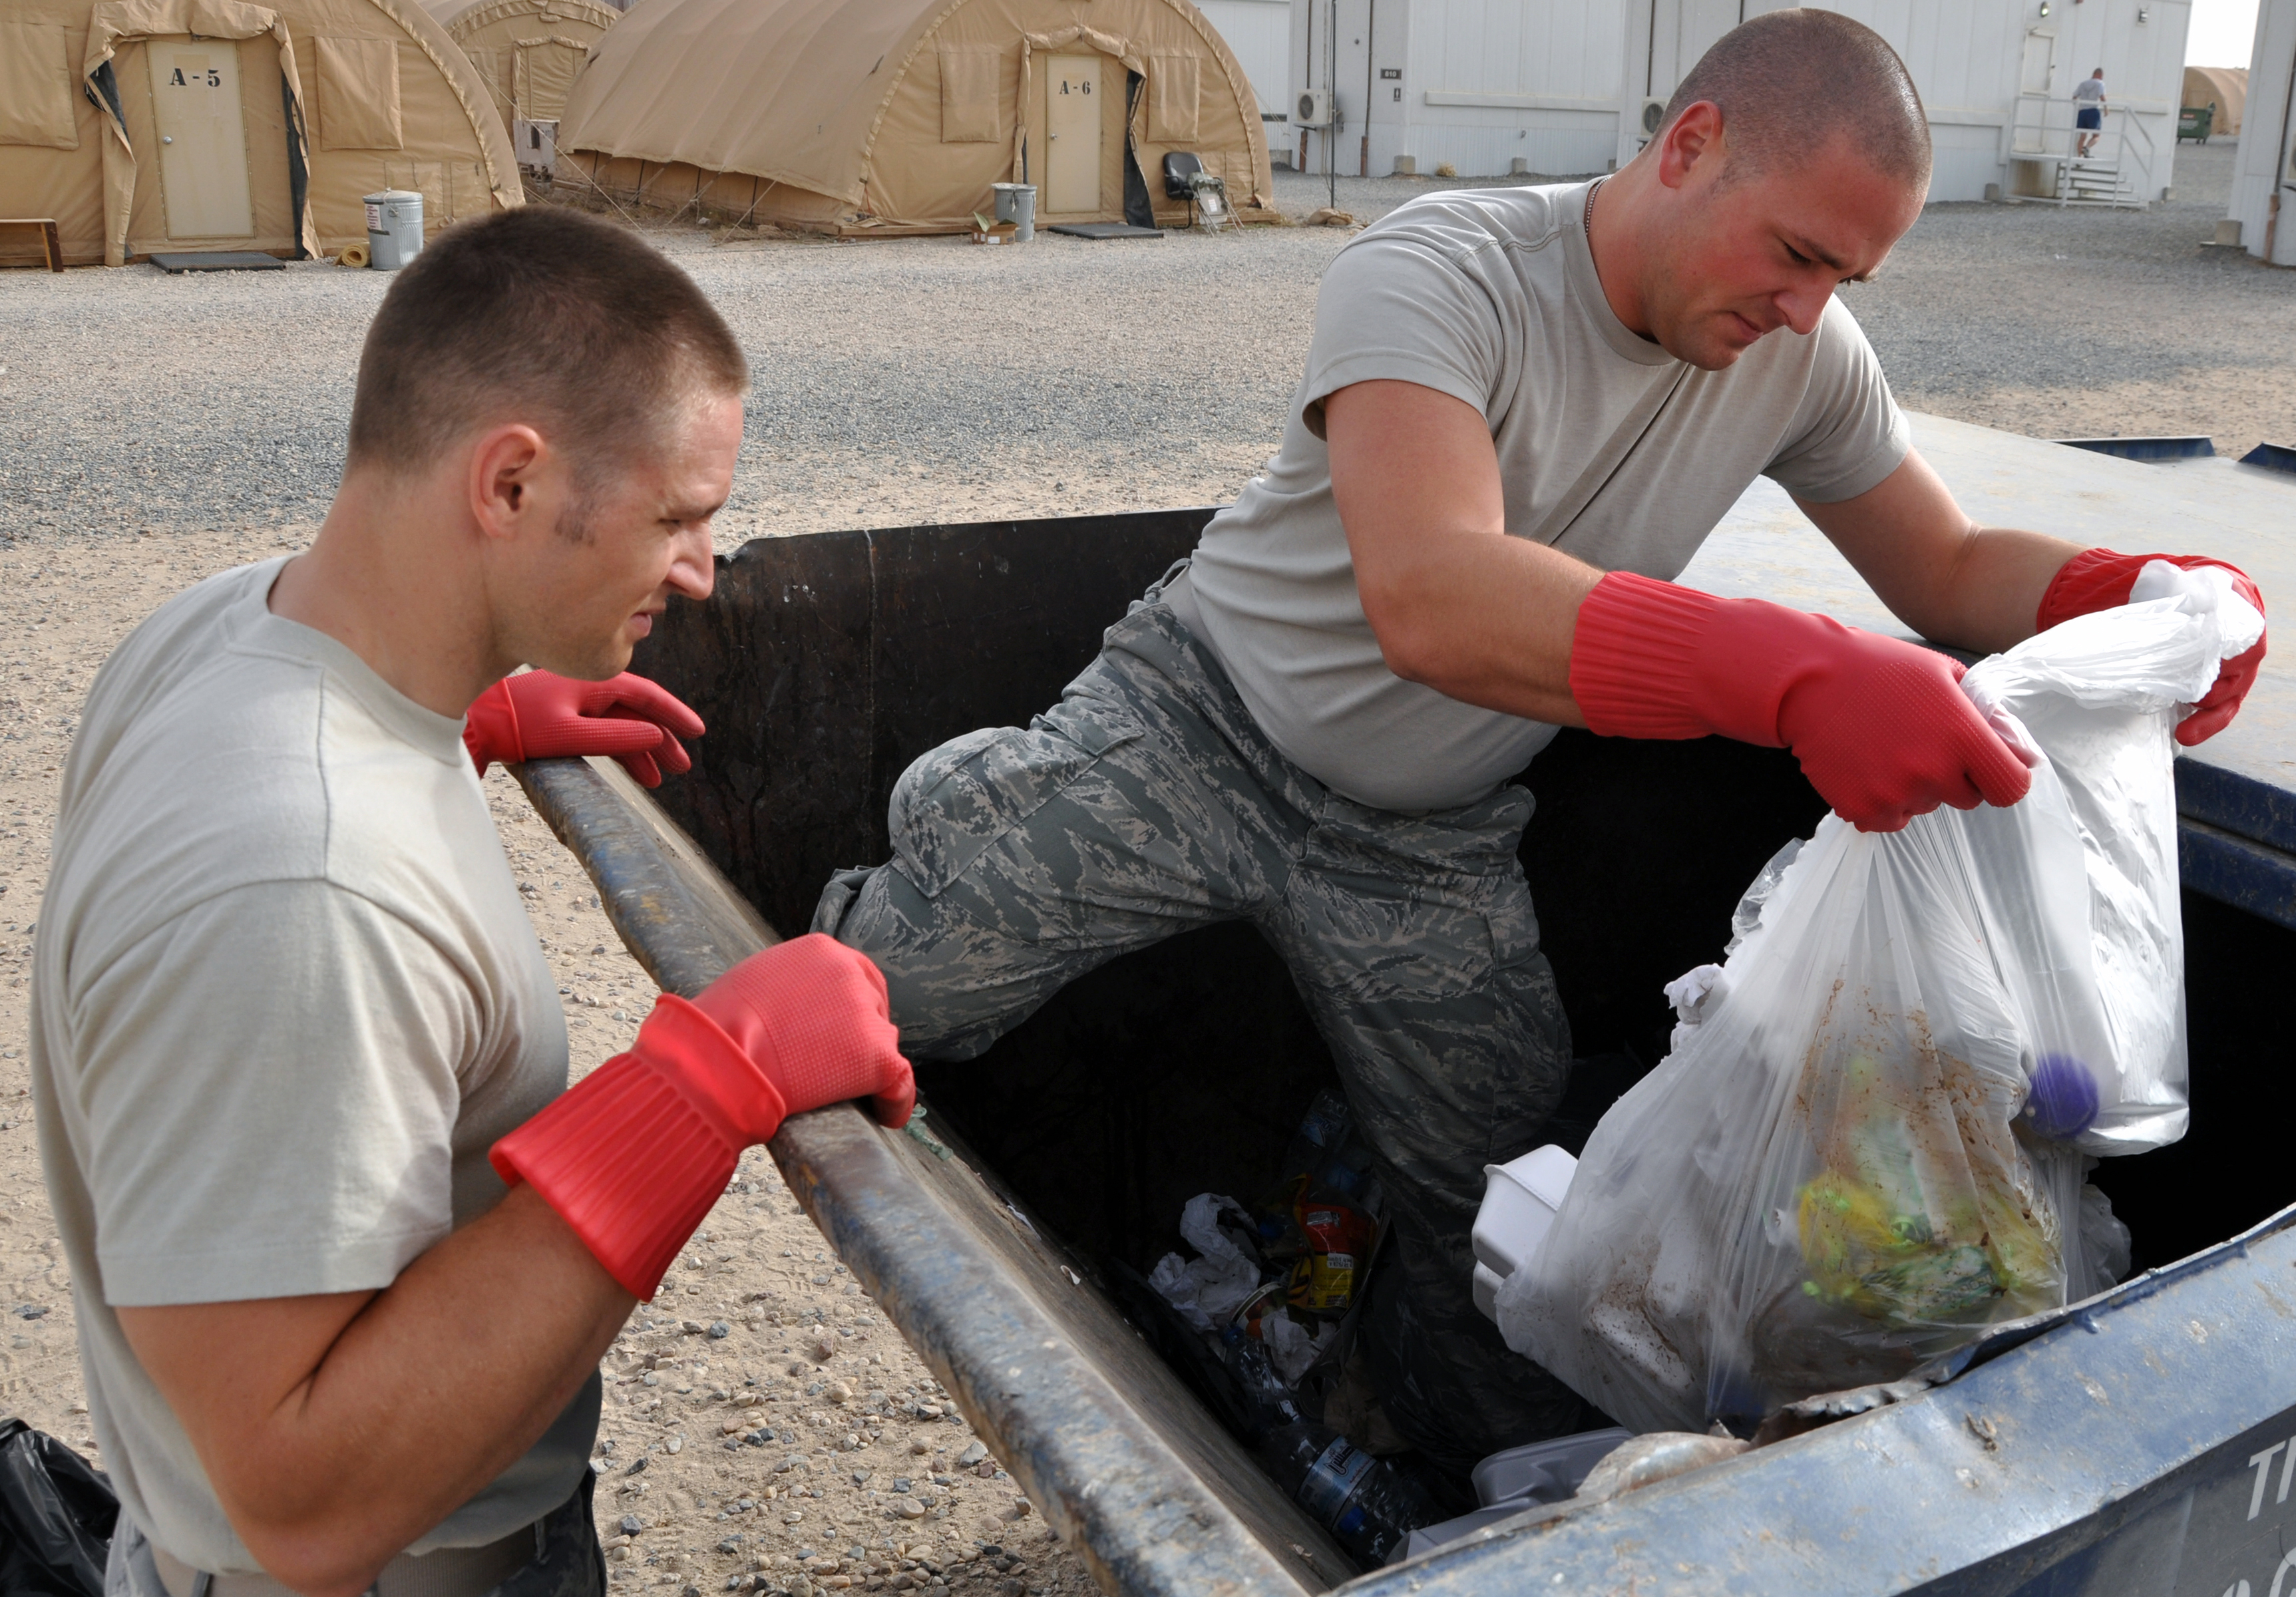 Two men in fatigues, one standing in the garbage bin